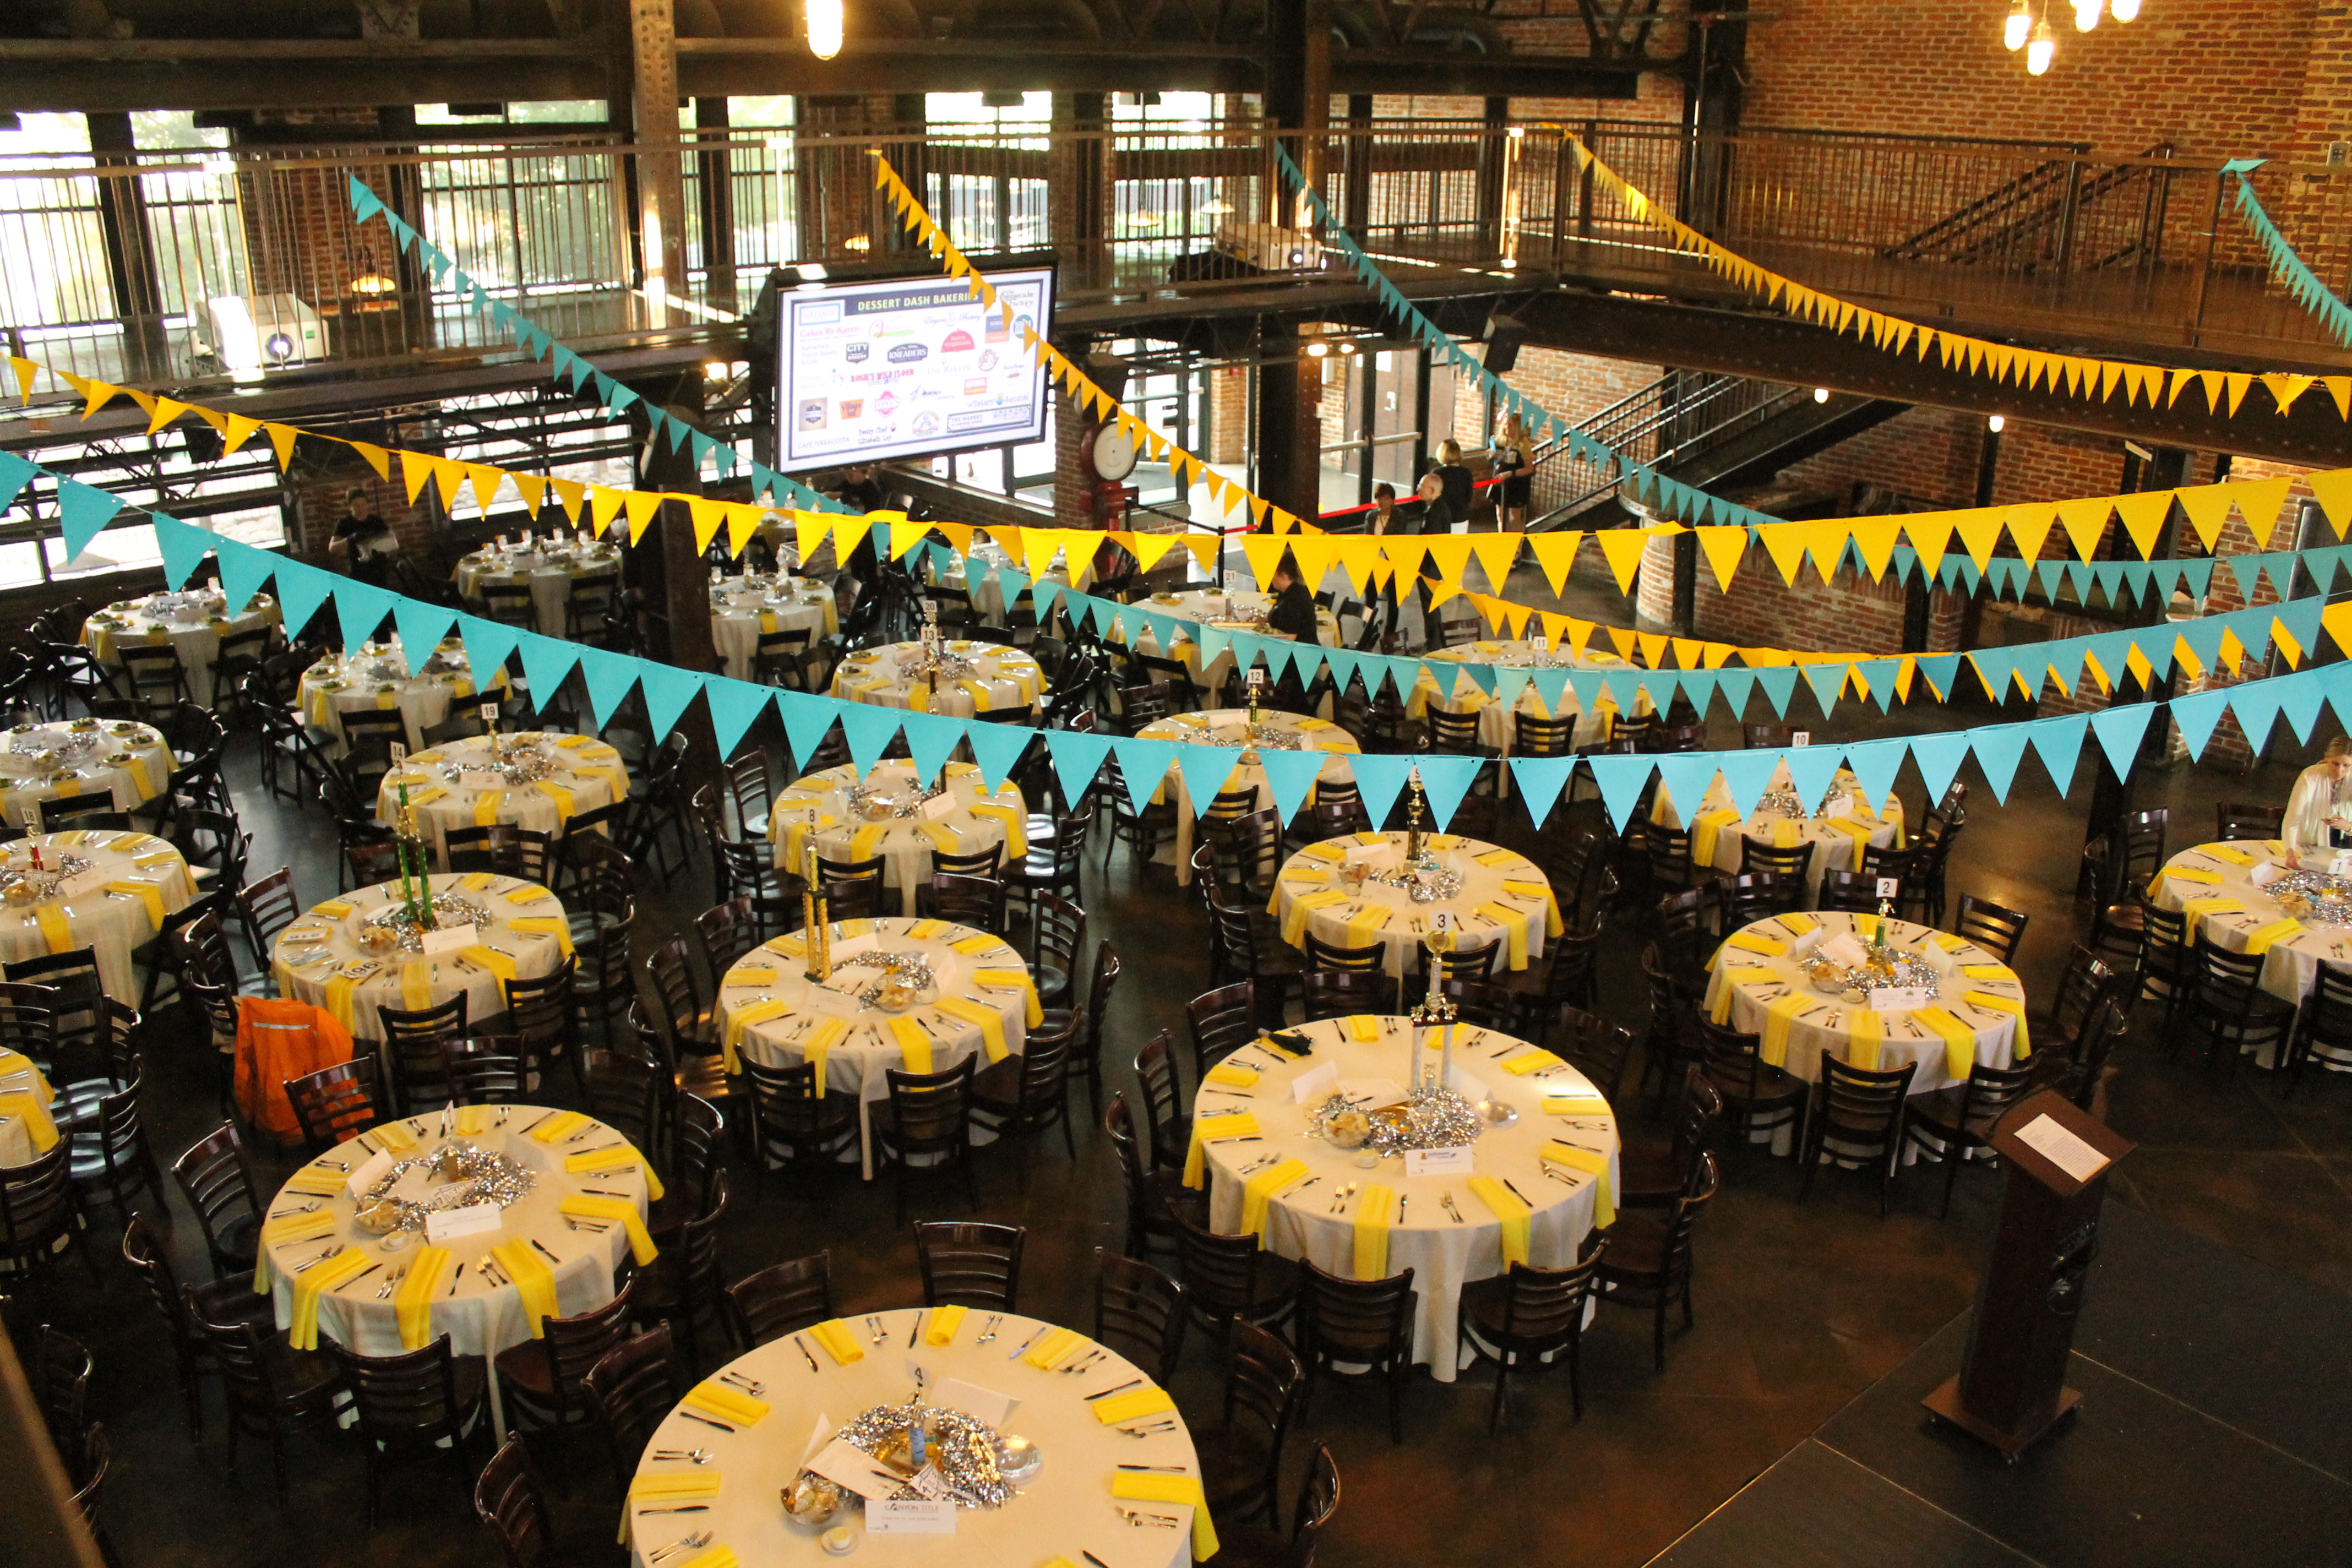 Large room full of circle tables with silver pom poms laying on each table